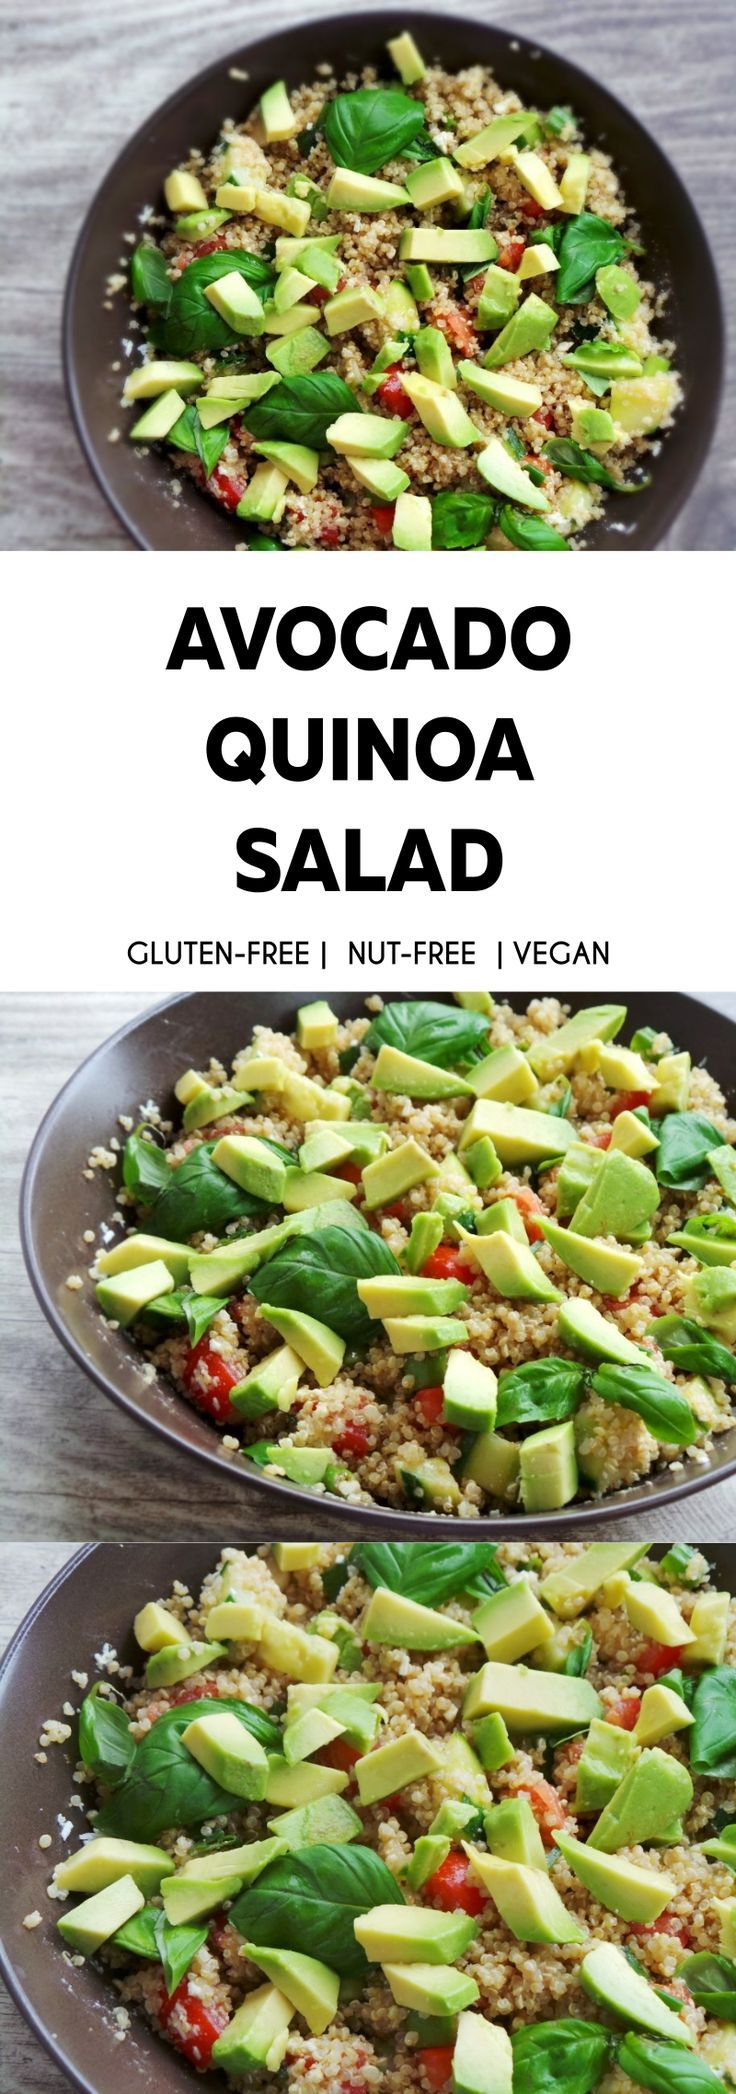 This is probably the healthiest and best leftover salad ever. I made it last…